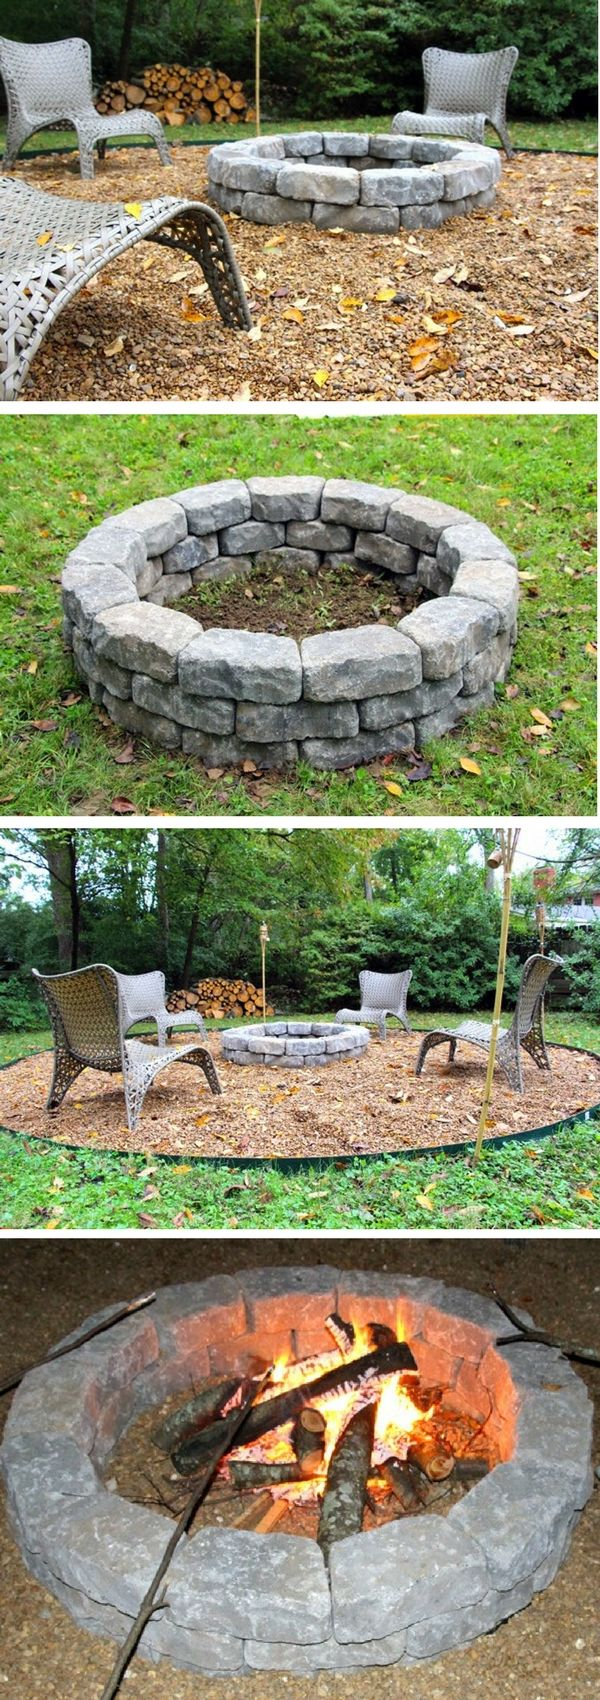 15 awesome diy fire pit ideas for your best bbq round fire pit